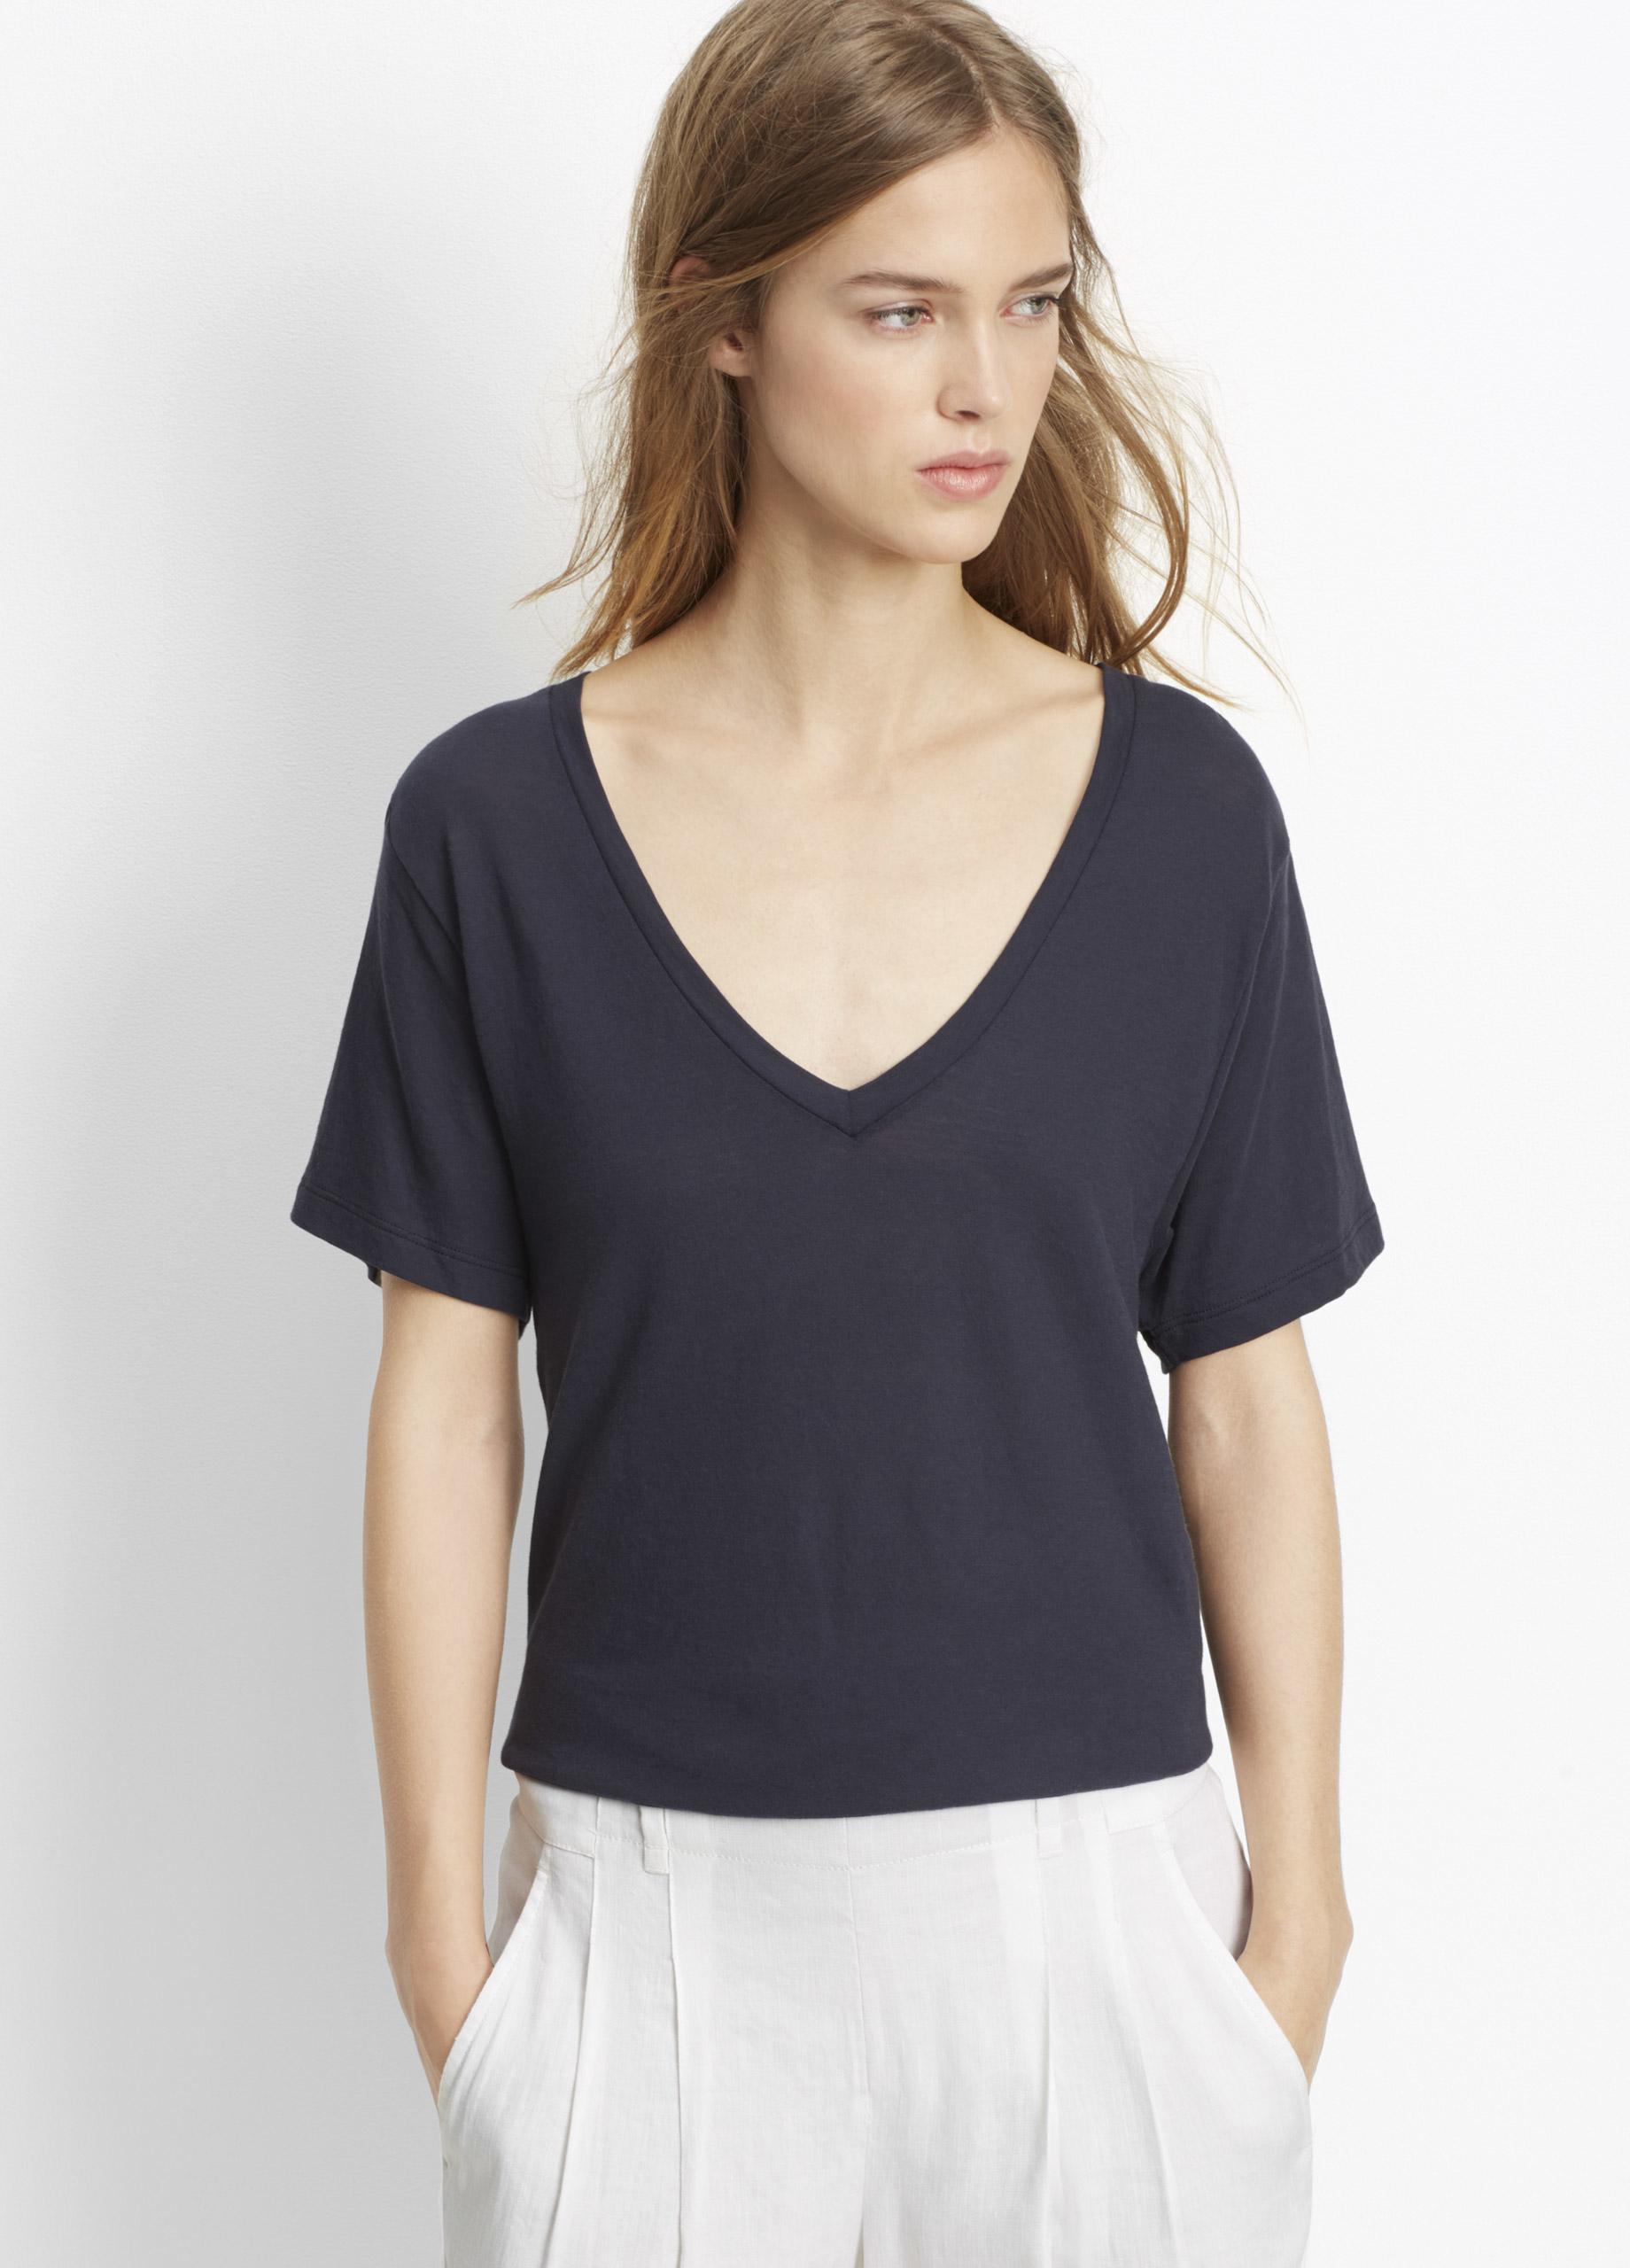 Our Pima Cotton Scoop Neck Tee is the perfect piece to add to your closet. 40% OFF FULL-PRICE TOPS & SWEATERS * USE CODE: GETCOZY EXTRA 40% OFF** ALL SALE STYLES DETAILS/5(53).